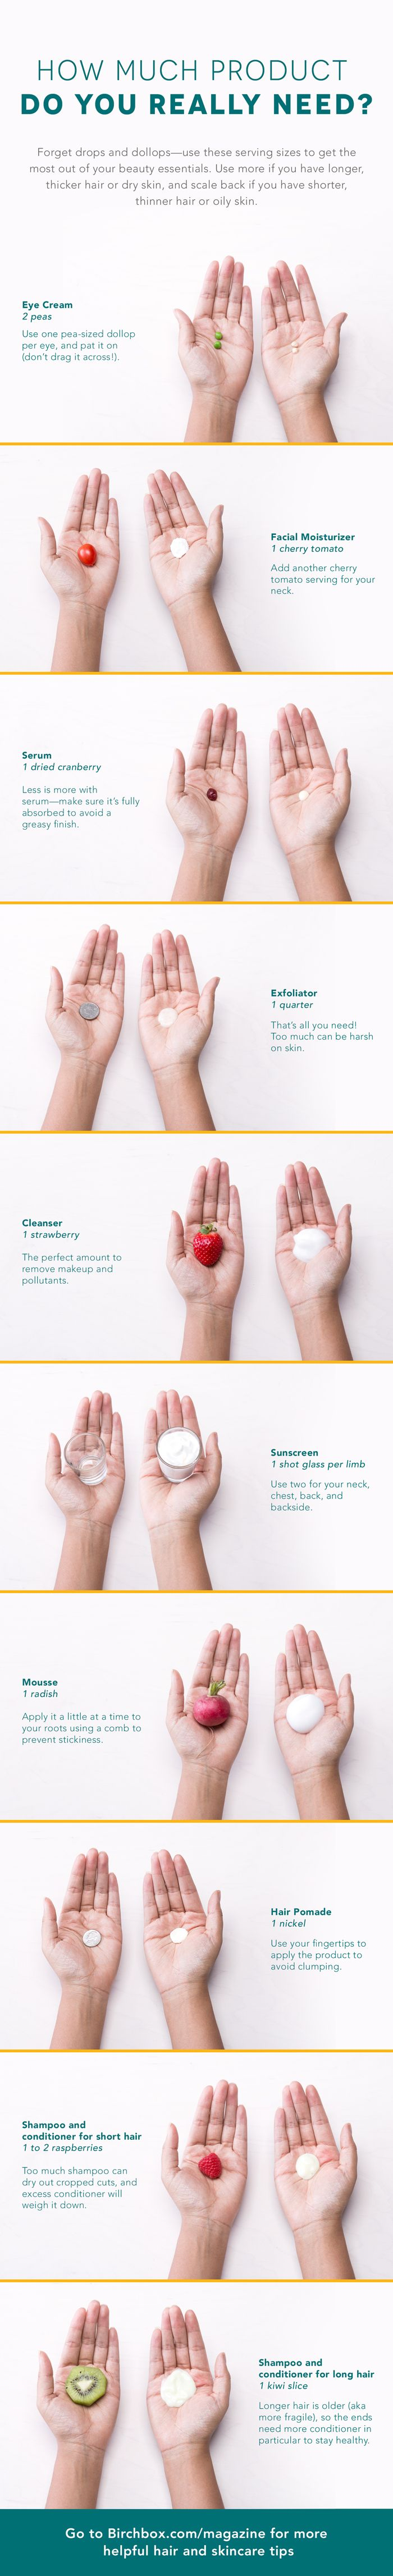 We <3 this! Use this guide to make sure you are using the right amounts for some of your beauty products. The shampoo surprised us!